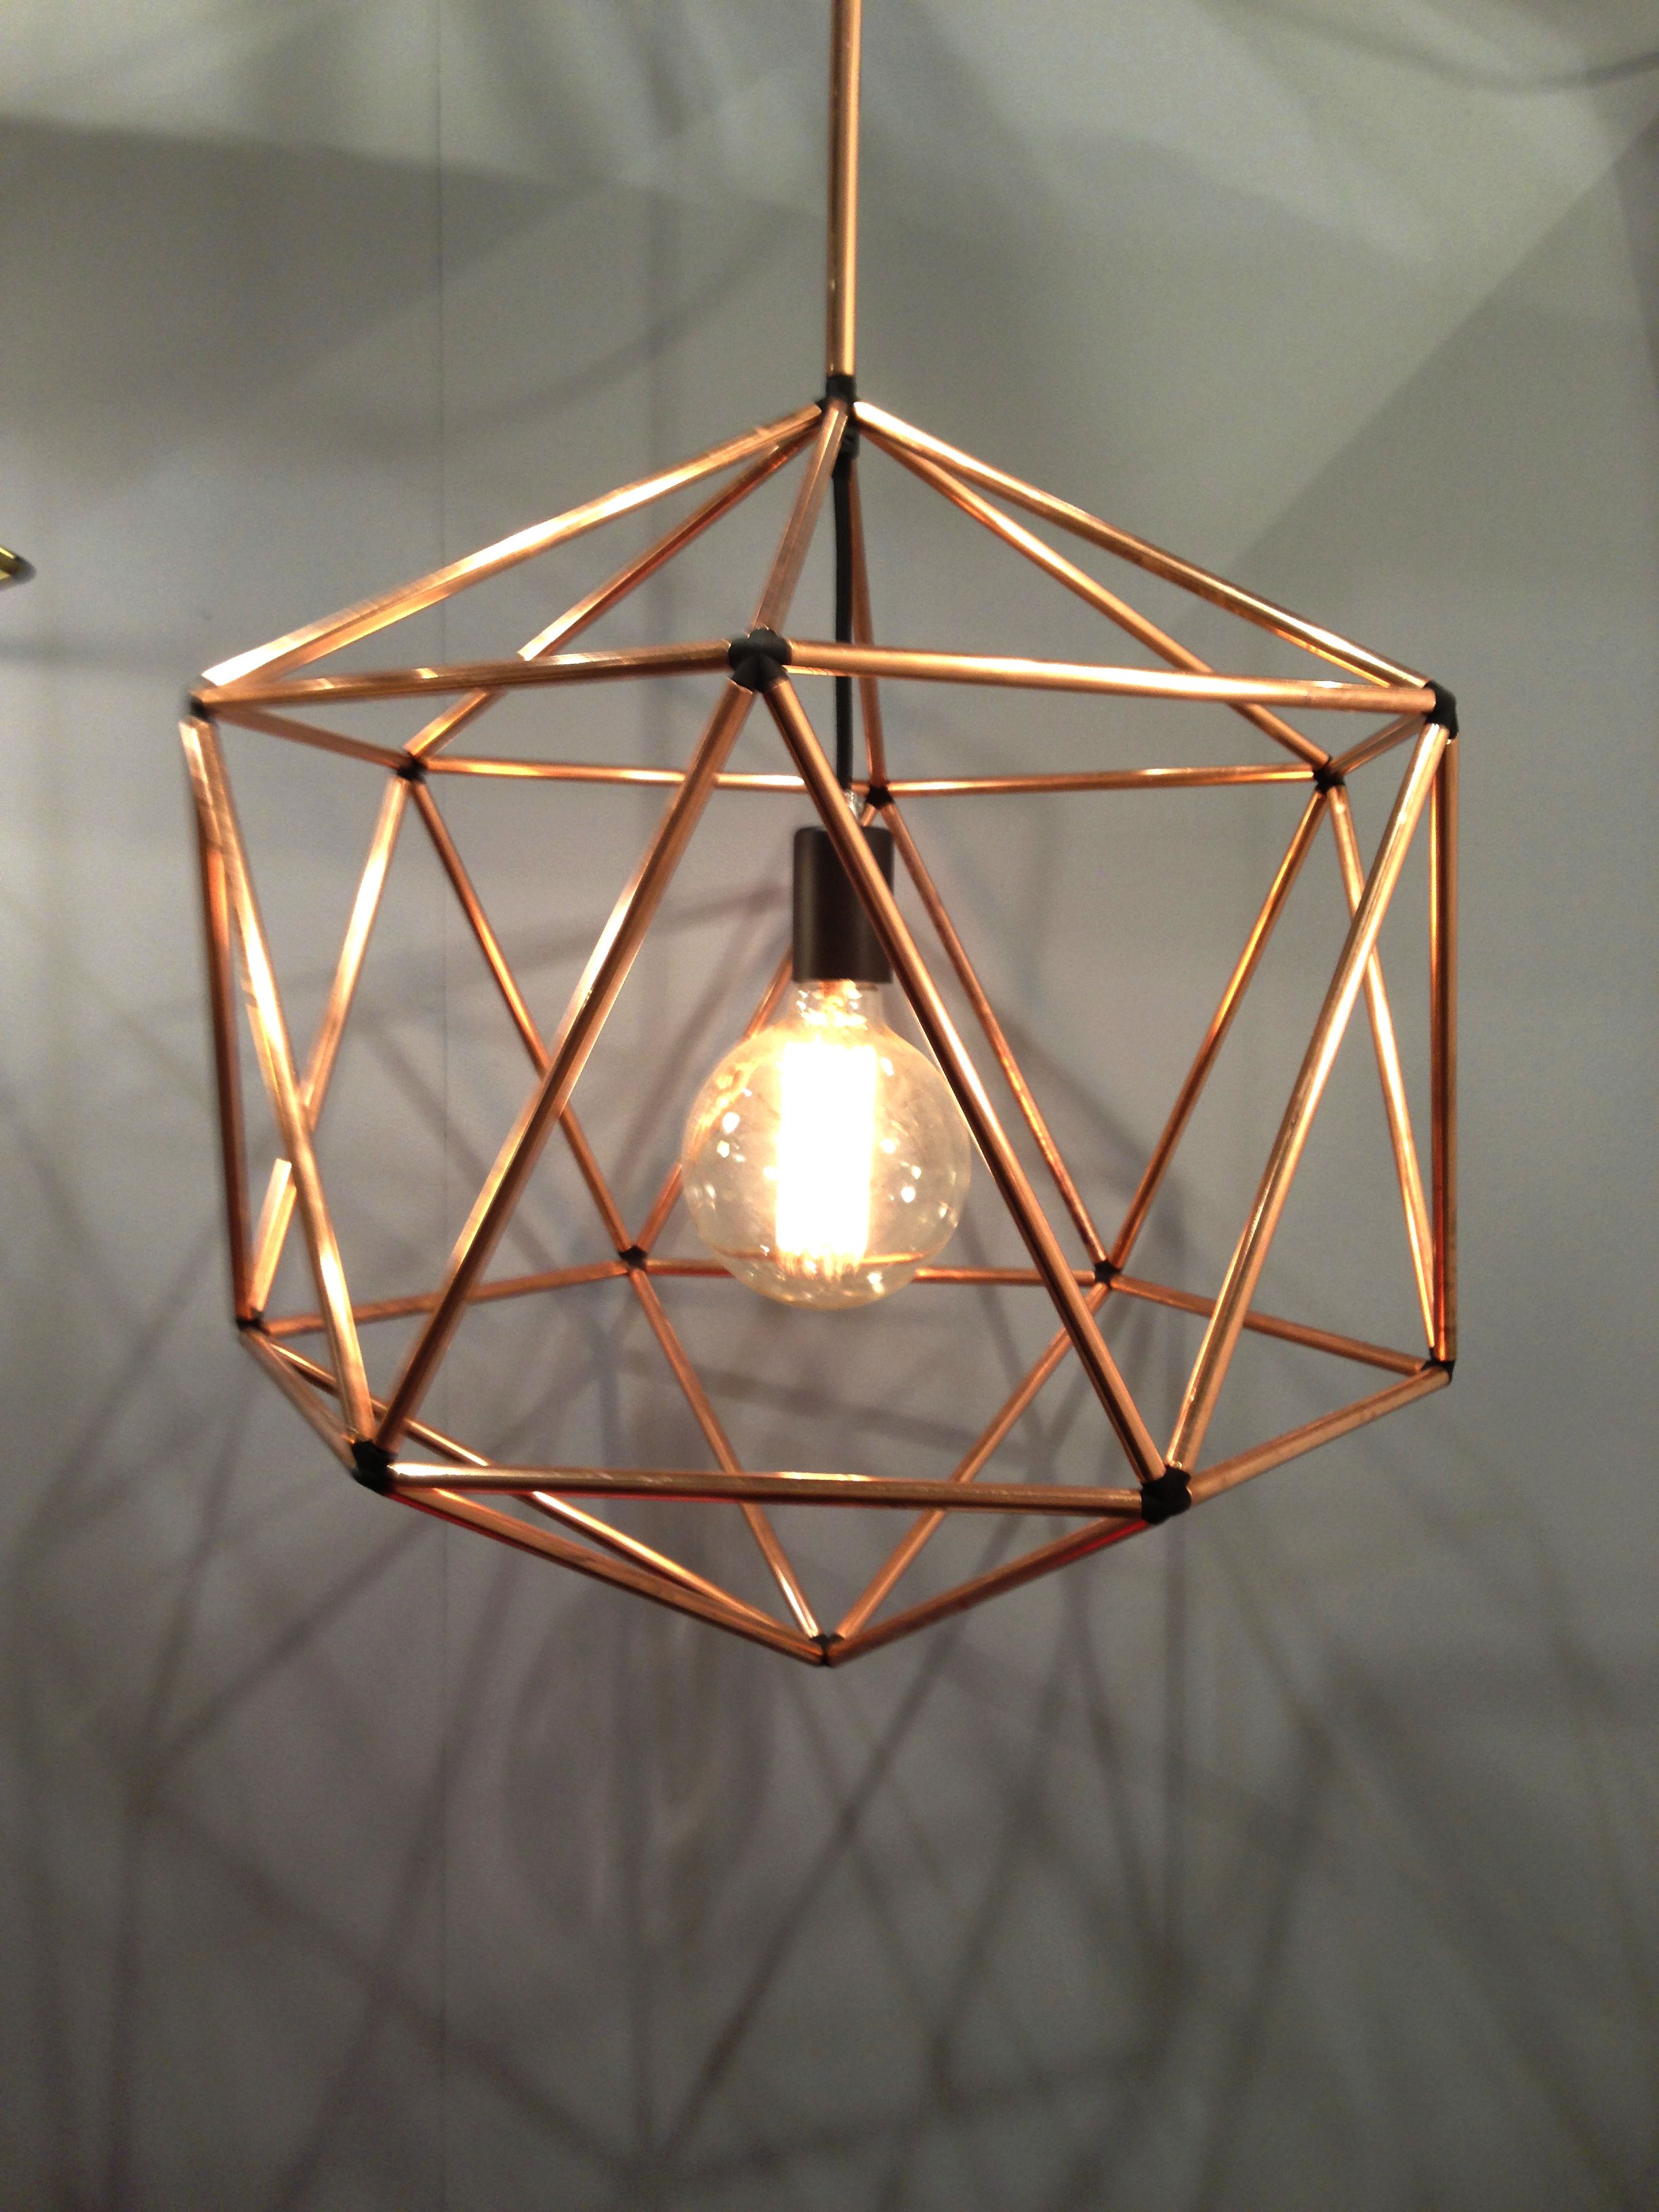 Copper pendant light by Ben Tovim Design